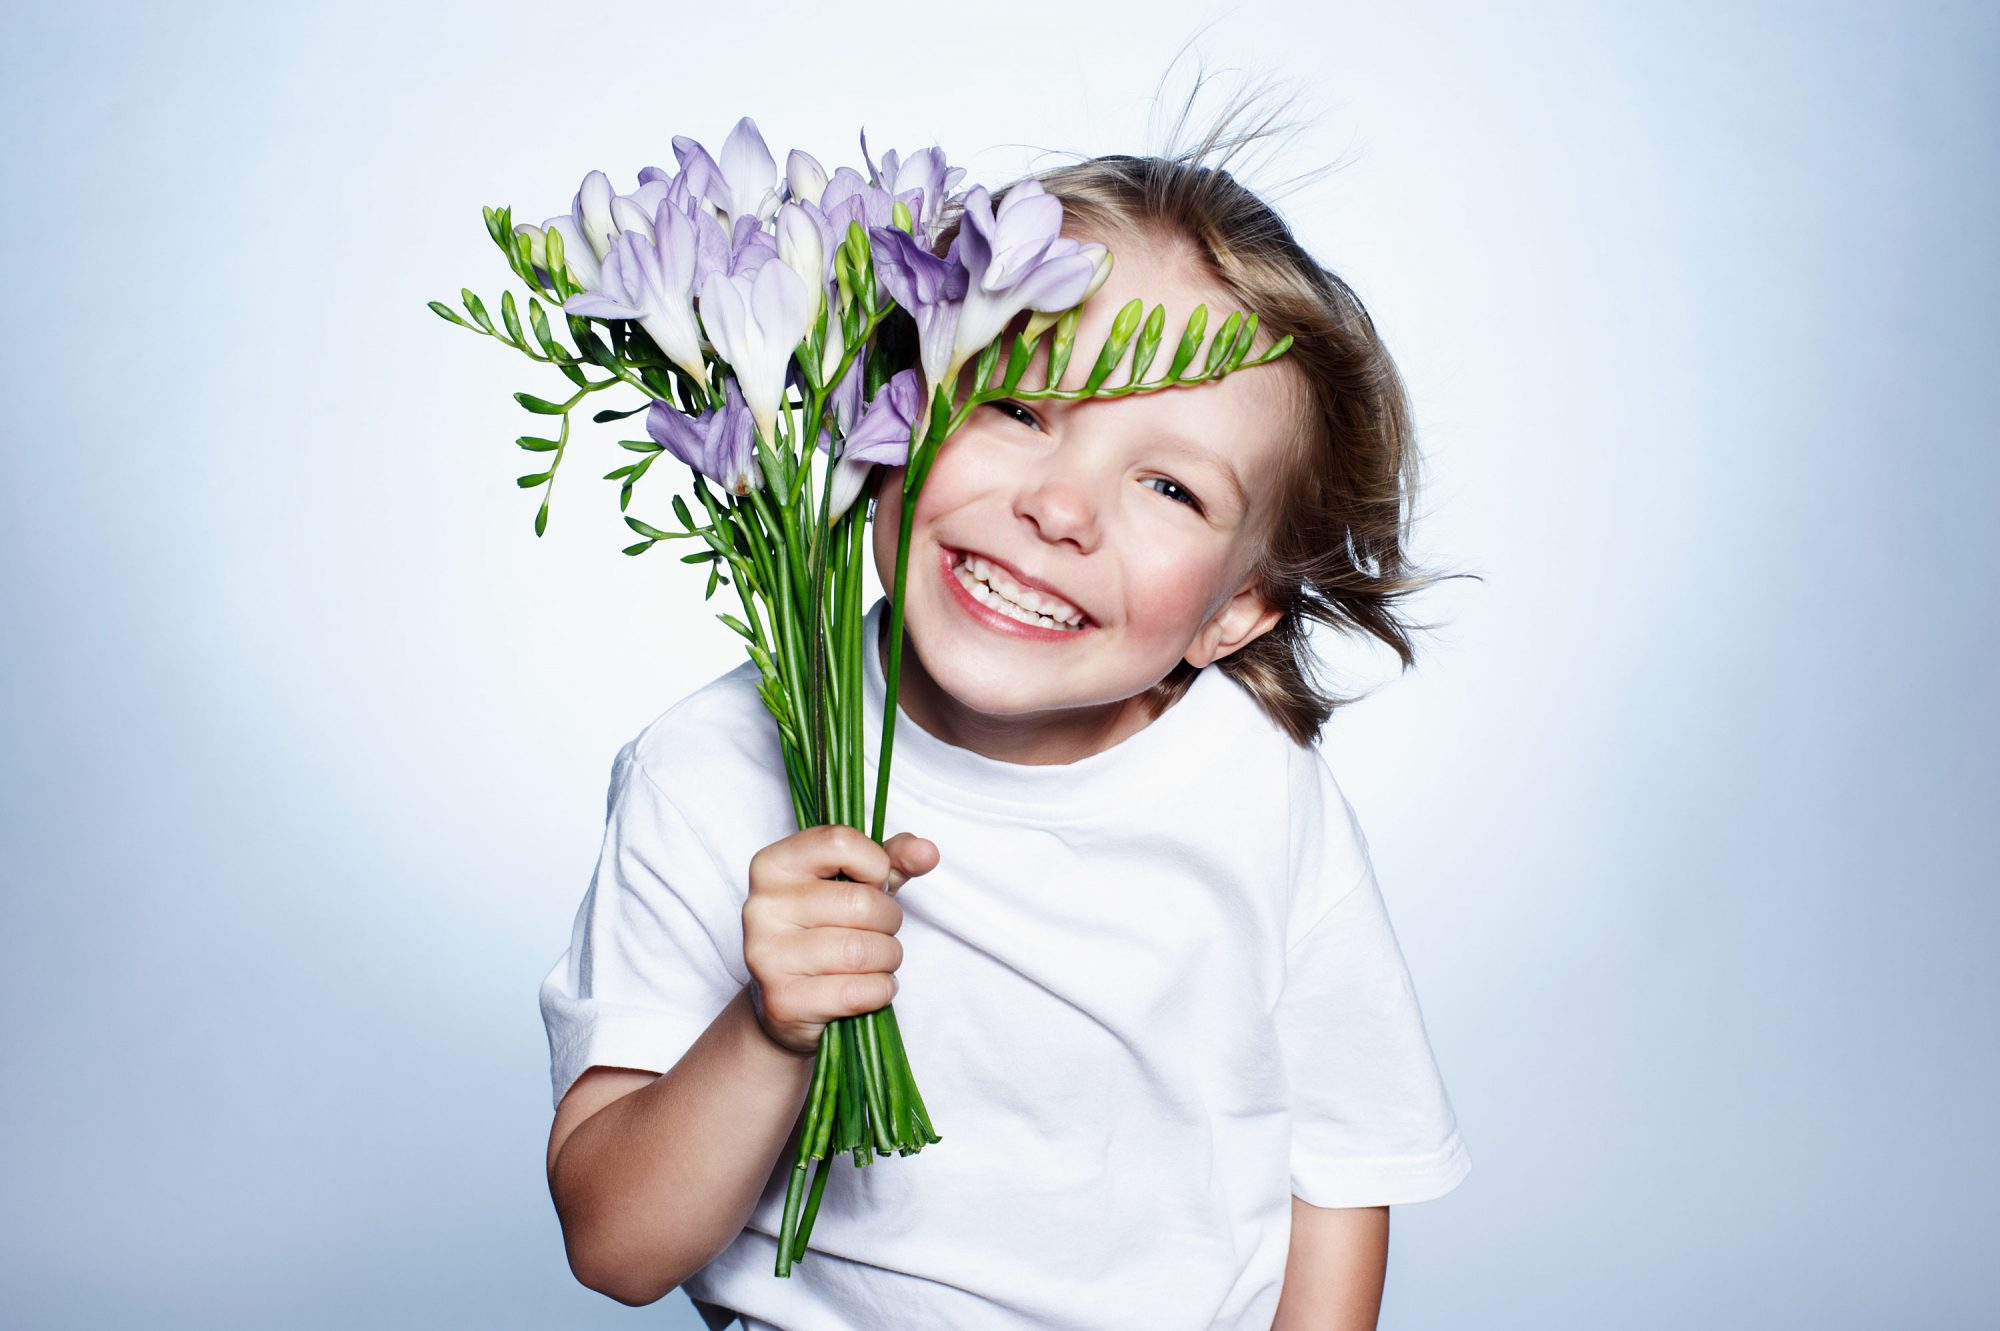 Little Boy Smiling with Flowers